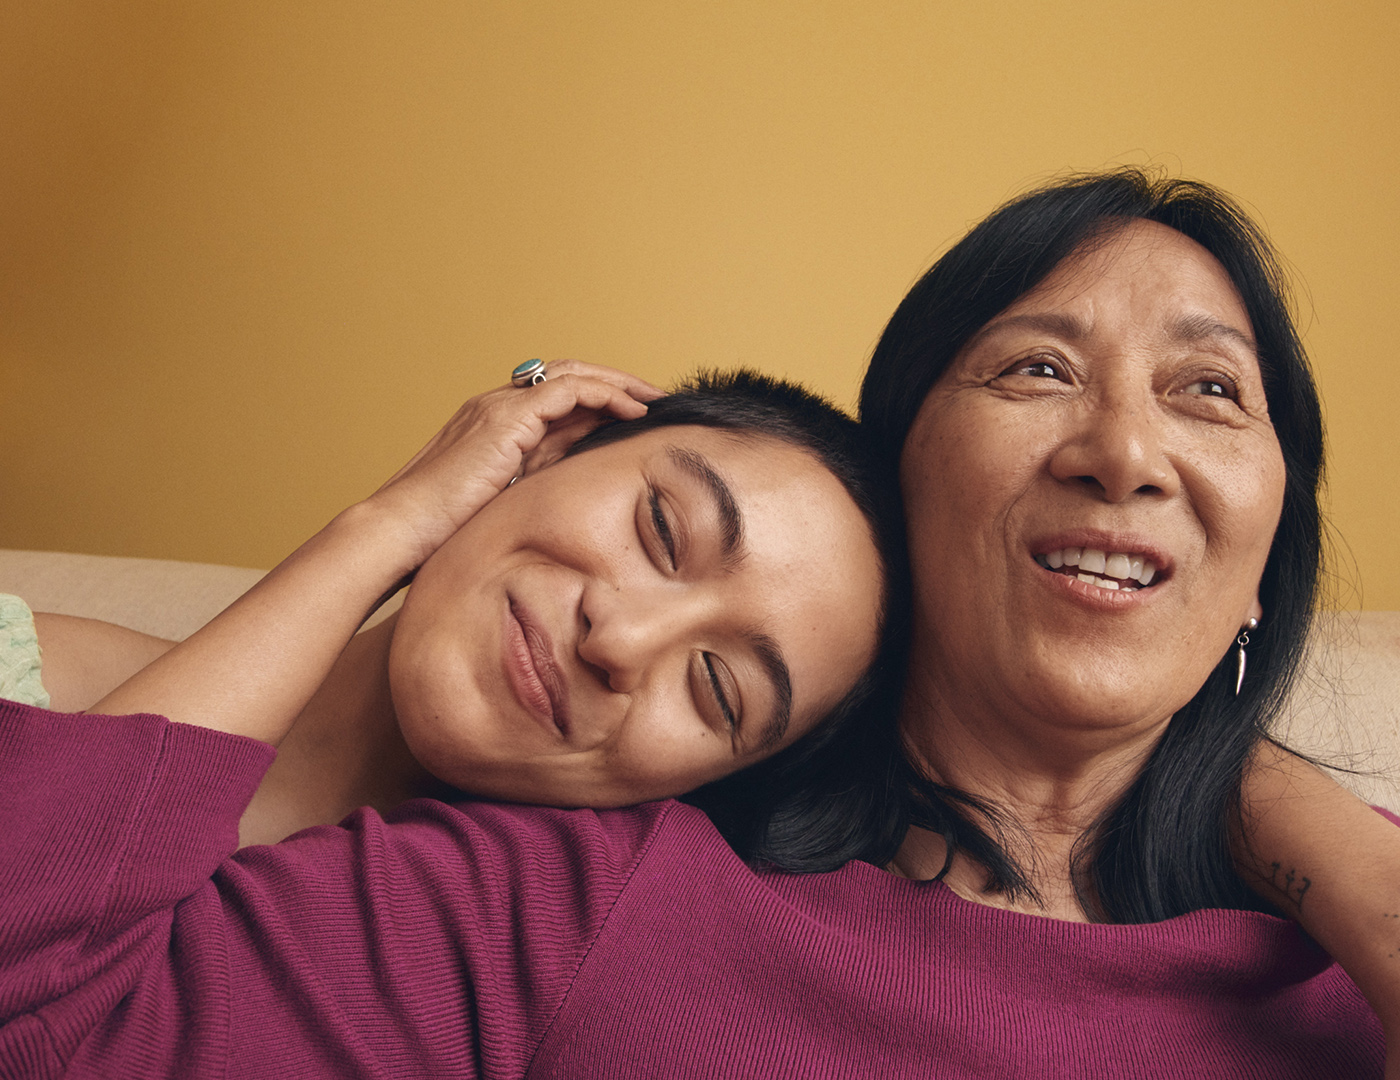 Photo of a woman leaning her head on another woman's shoulder, both smiling